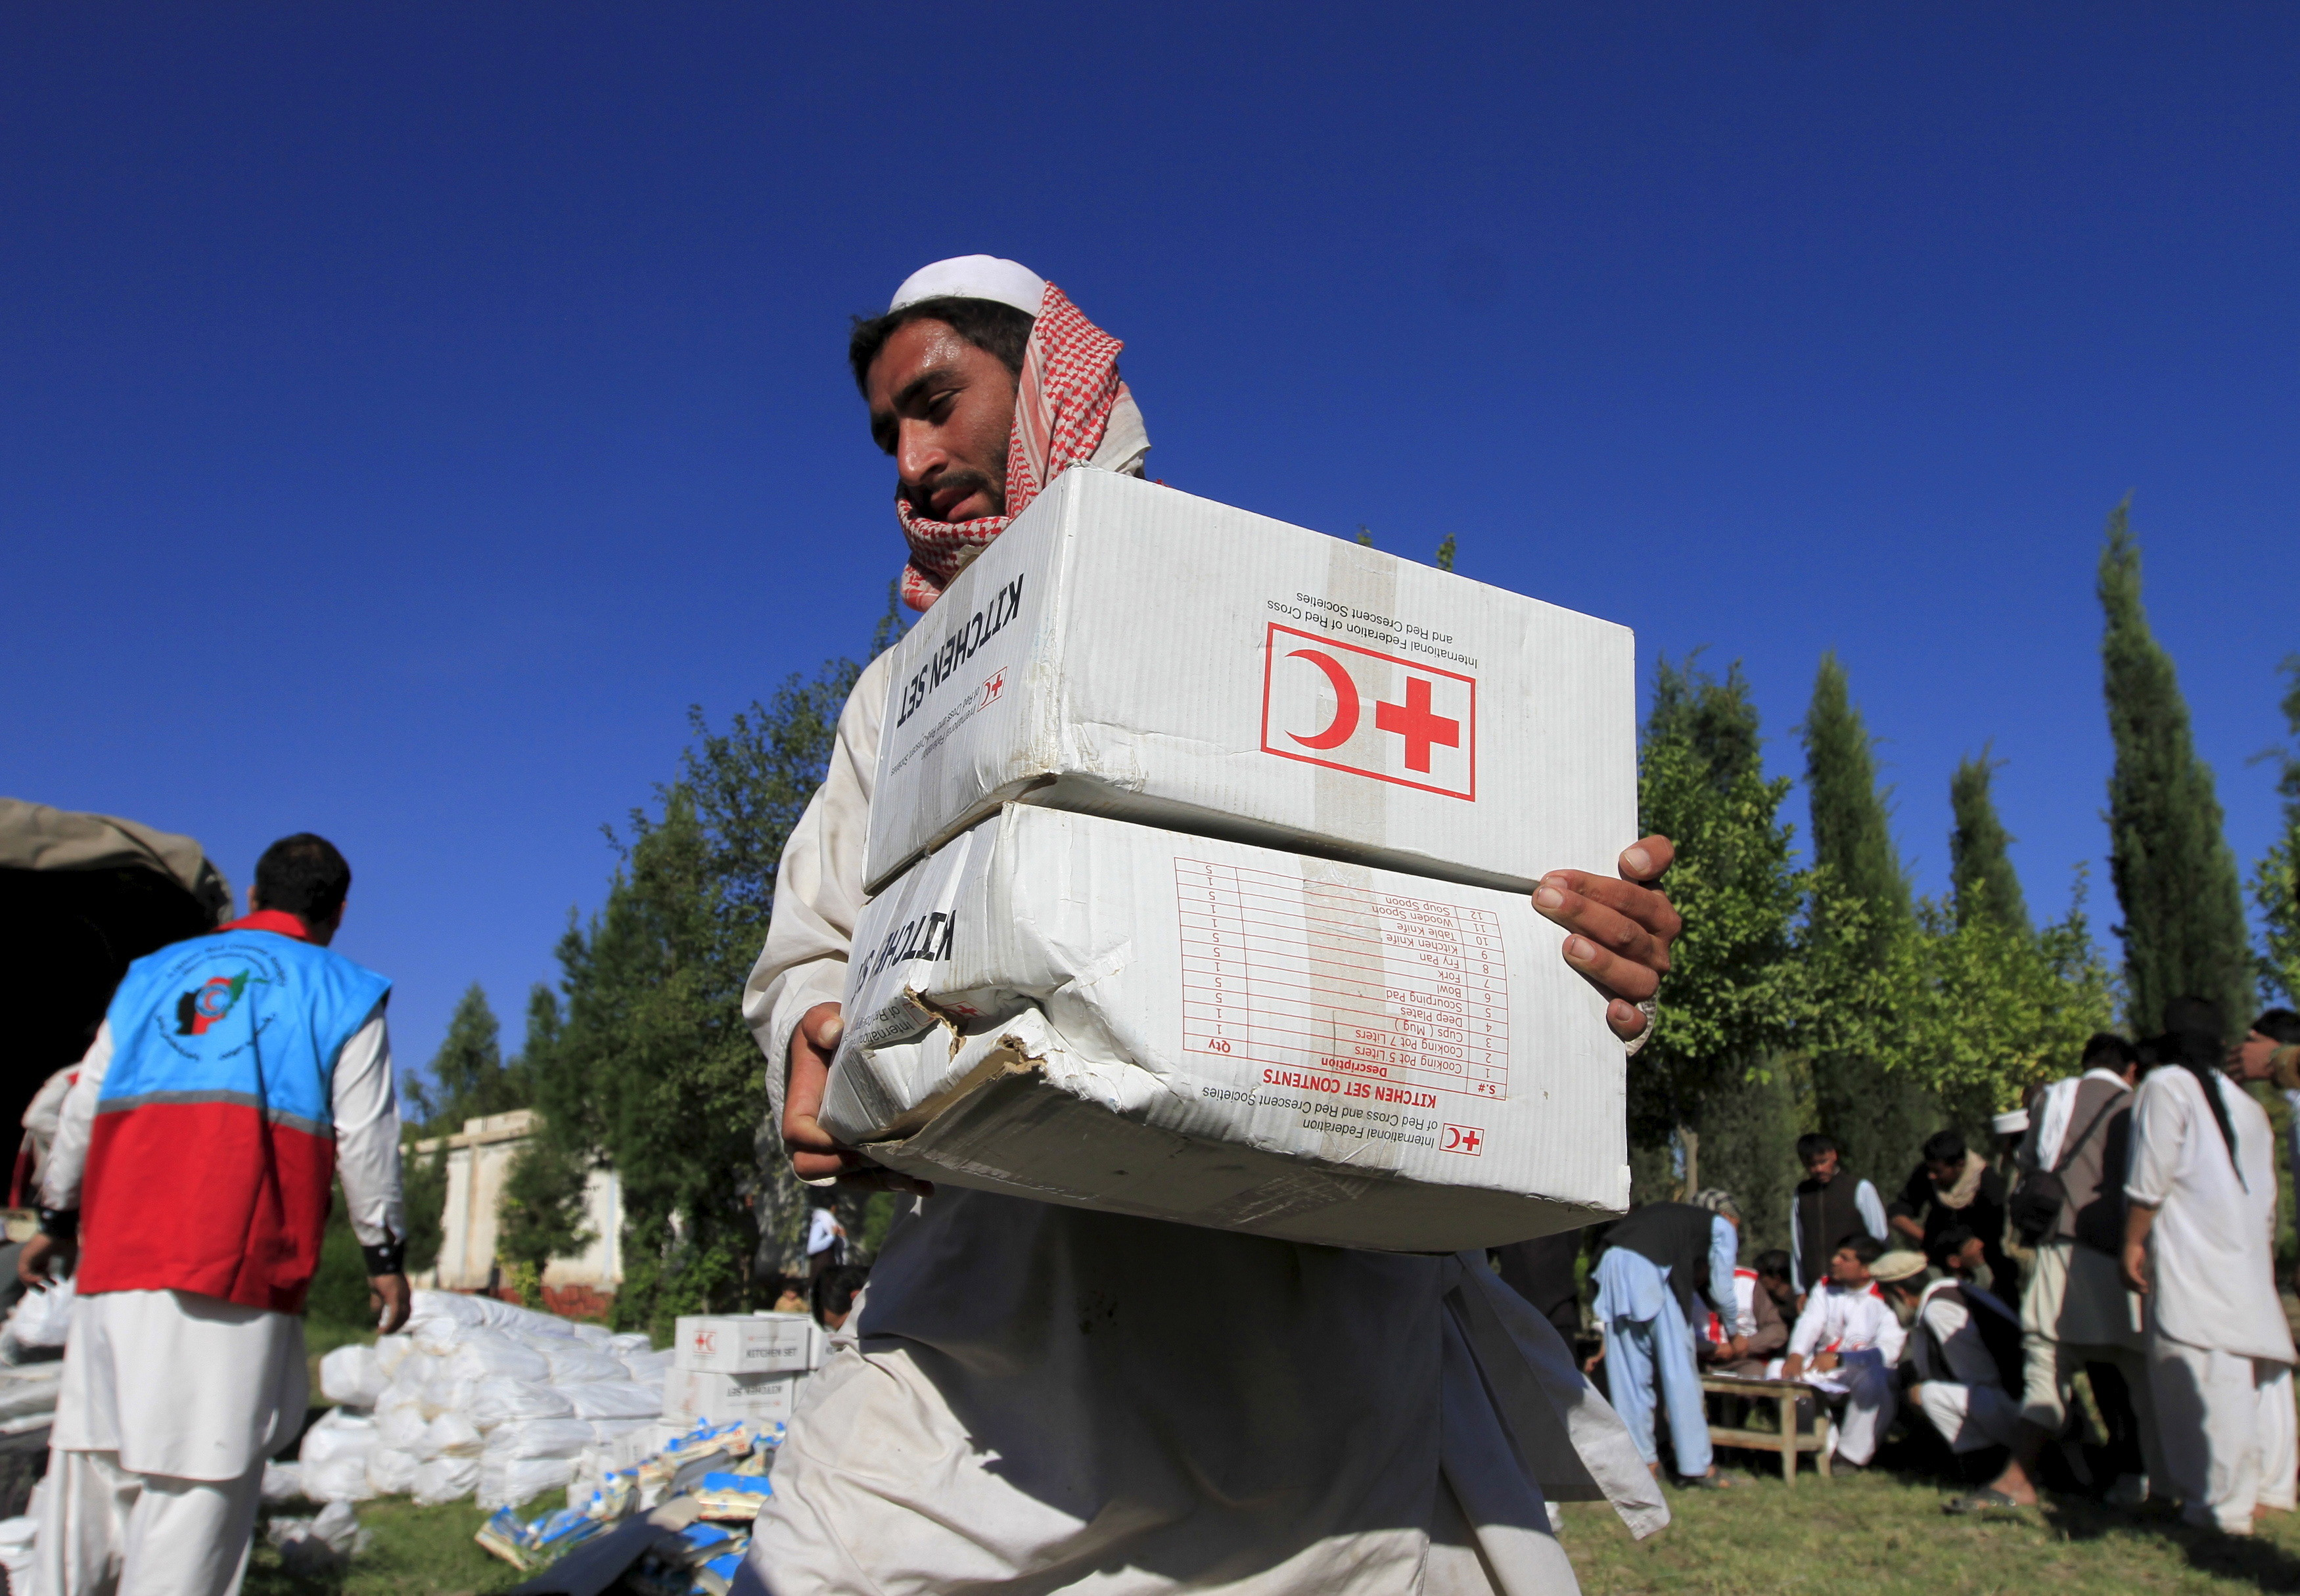 An Afghan man receives aid from the International Federation of the Red Cross and Red Crescent Societies after an earthquake, in Behsud district of Jalalabad province, Afghanistan October 28, 2015. The Taliban urged aid agencies on Tuesday to push ahead in delivering emergency relief supplies after a major earthquake hit remote mountainous regions of northern Afghanistan and Pakistan. Relief groups' efforts to assess the damage were hindered by an unstable security situation that has left much of the affected areas unsafe for international aid workers and government troops. But the Taliban, which have stepped up their Islamist insurgency against the Western-backed government in Kabul this year, indicated they would not stand in the way of aid efforts.